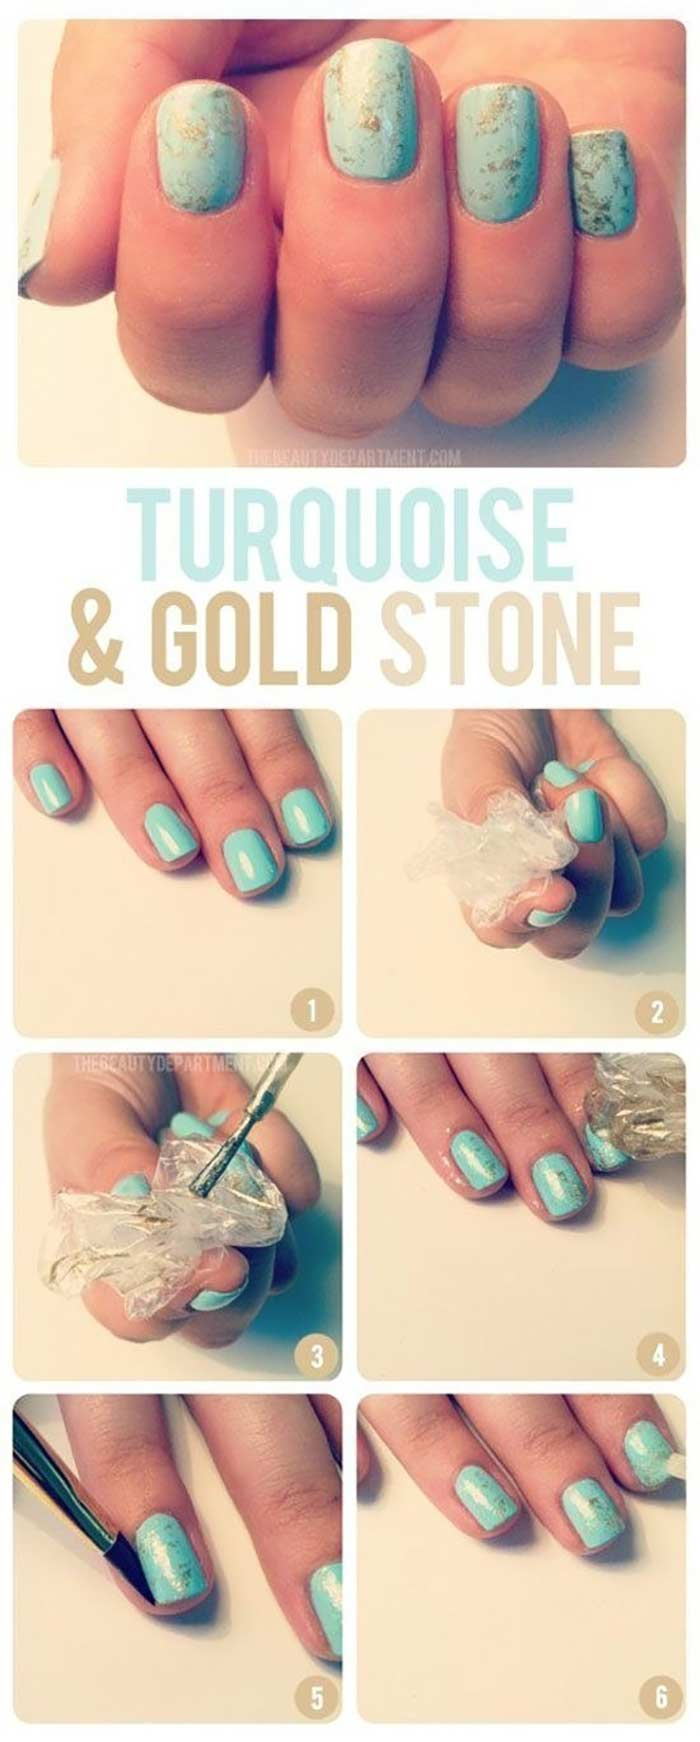 Top 60 easy nail designs for short nails 2018 update turquoise and gold nails cute nail designs for short nails prinsesfo Gallery